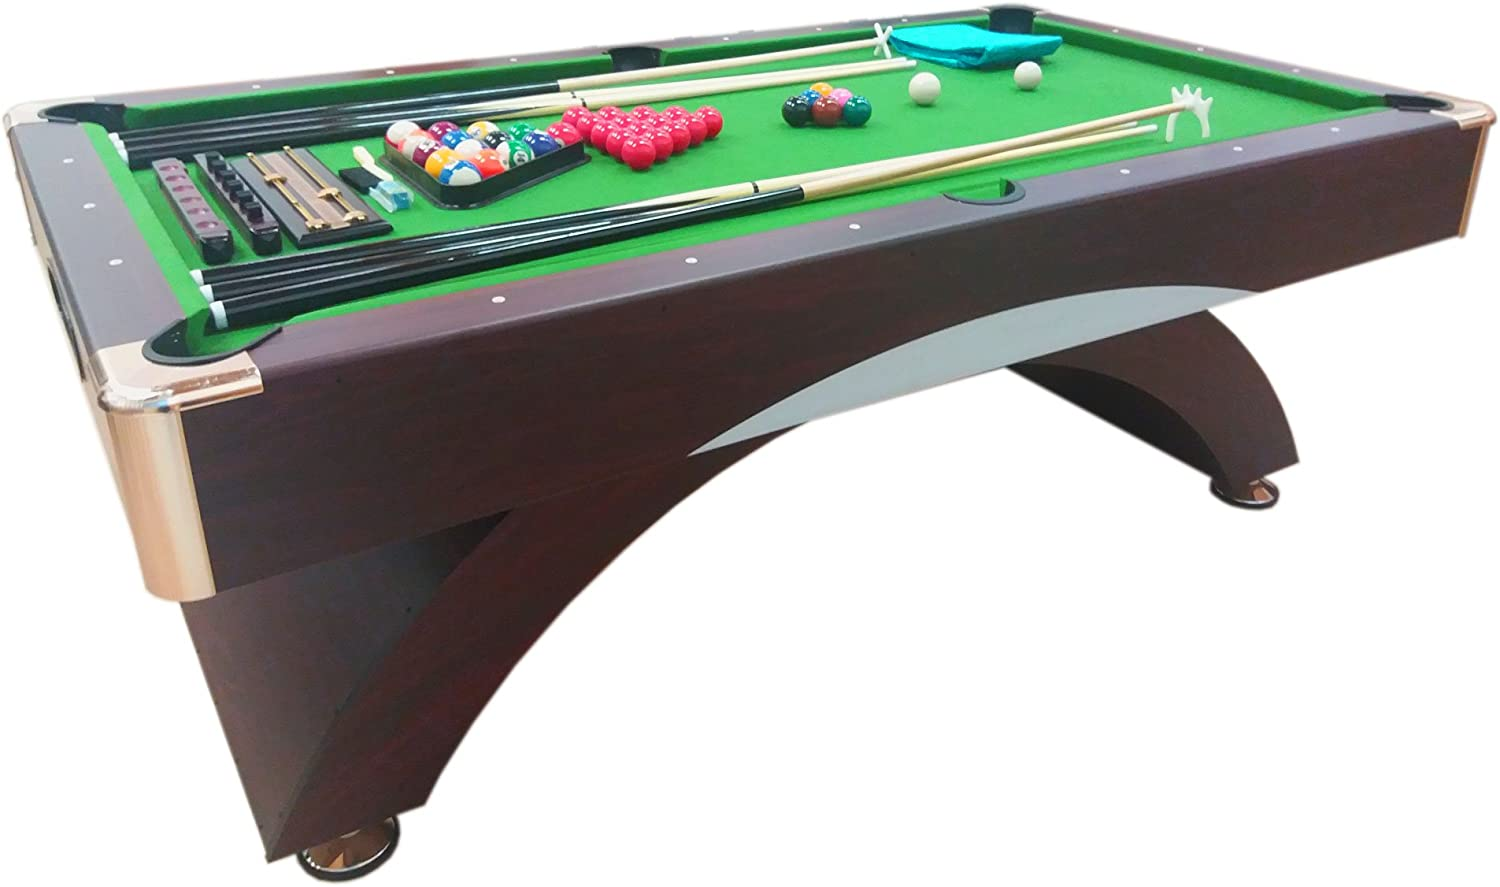 MESA DE BILLAR JUEGOS DE BILLAR 7 FT CON PAÑO VERDE FULL OPTIONAL CARAMBOLA - SNOOKER | SHOOTING GREEN FULL: Amazon.es: Deportes y aire libre